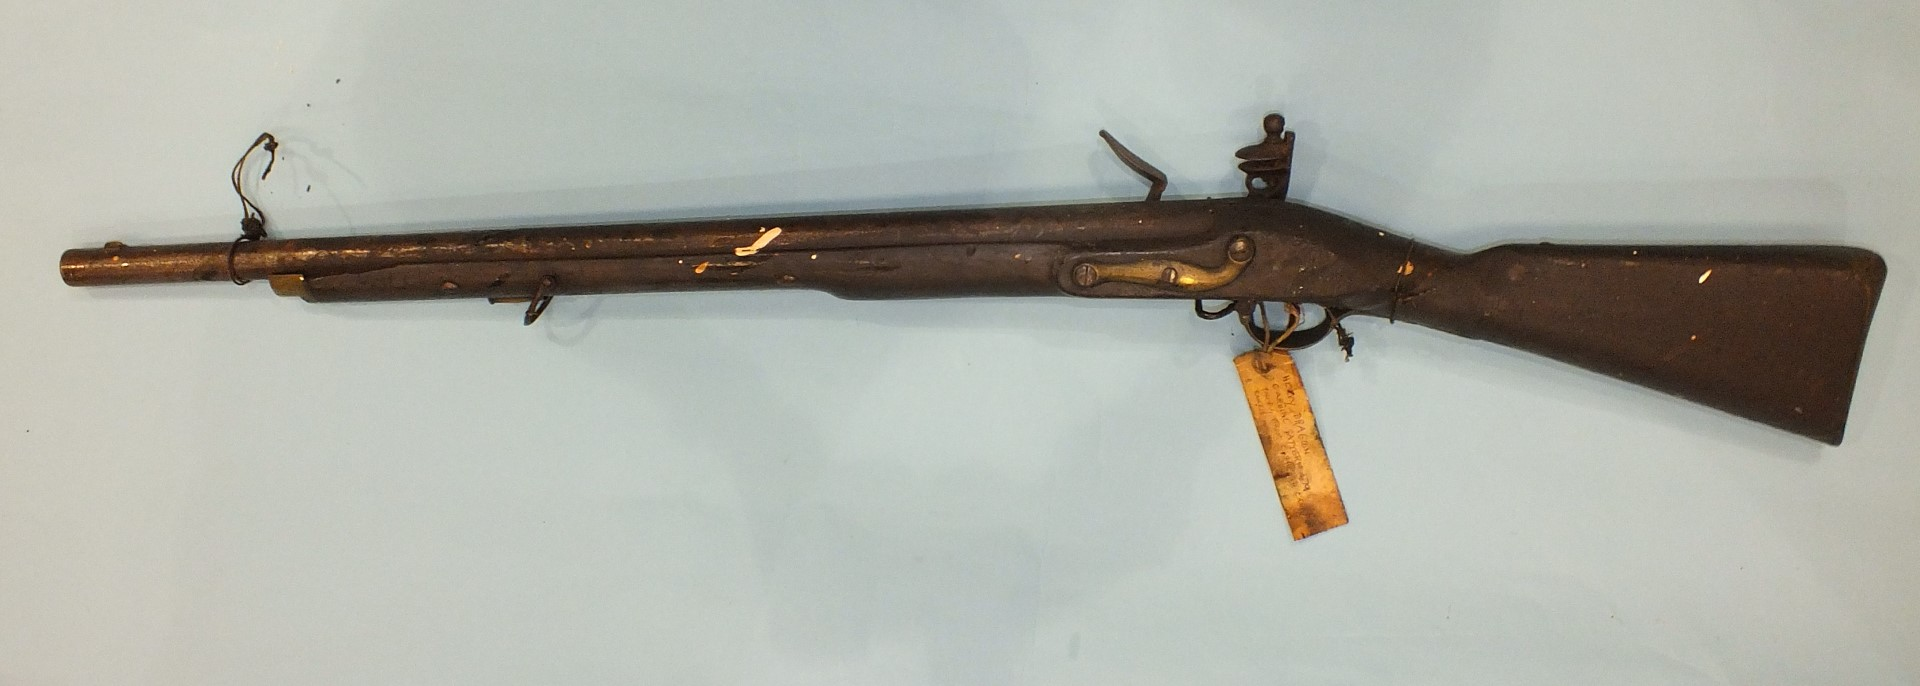 Lot 225 - A heavy dragoon 1796 pattern carbine, the flint lock with crowned 'GR' and stamped 'TOWER', the